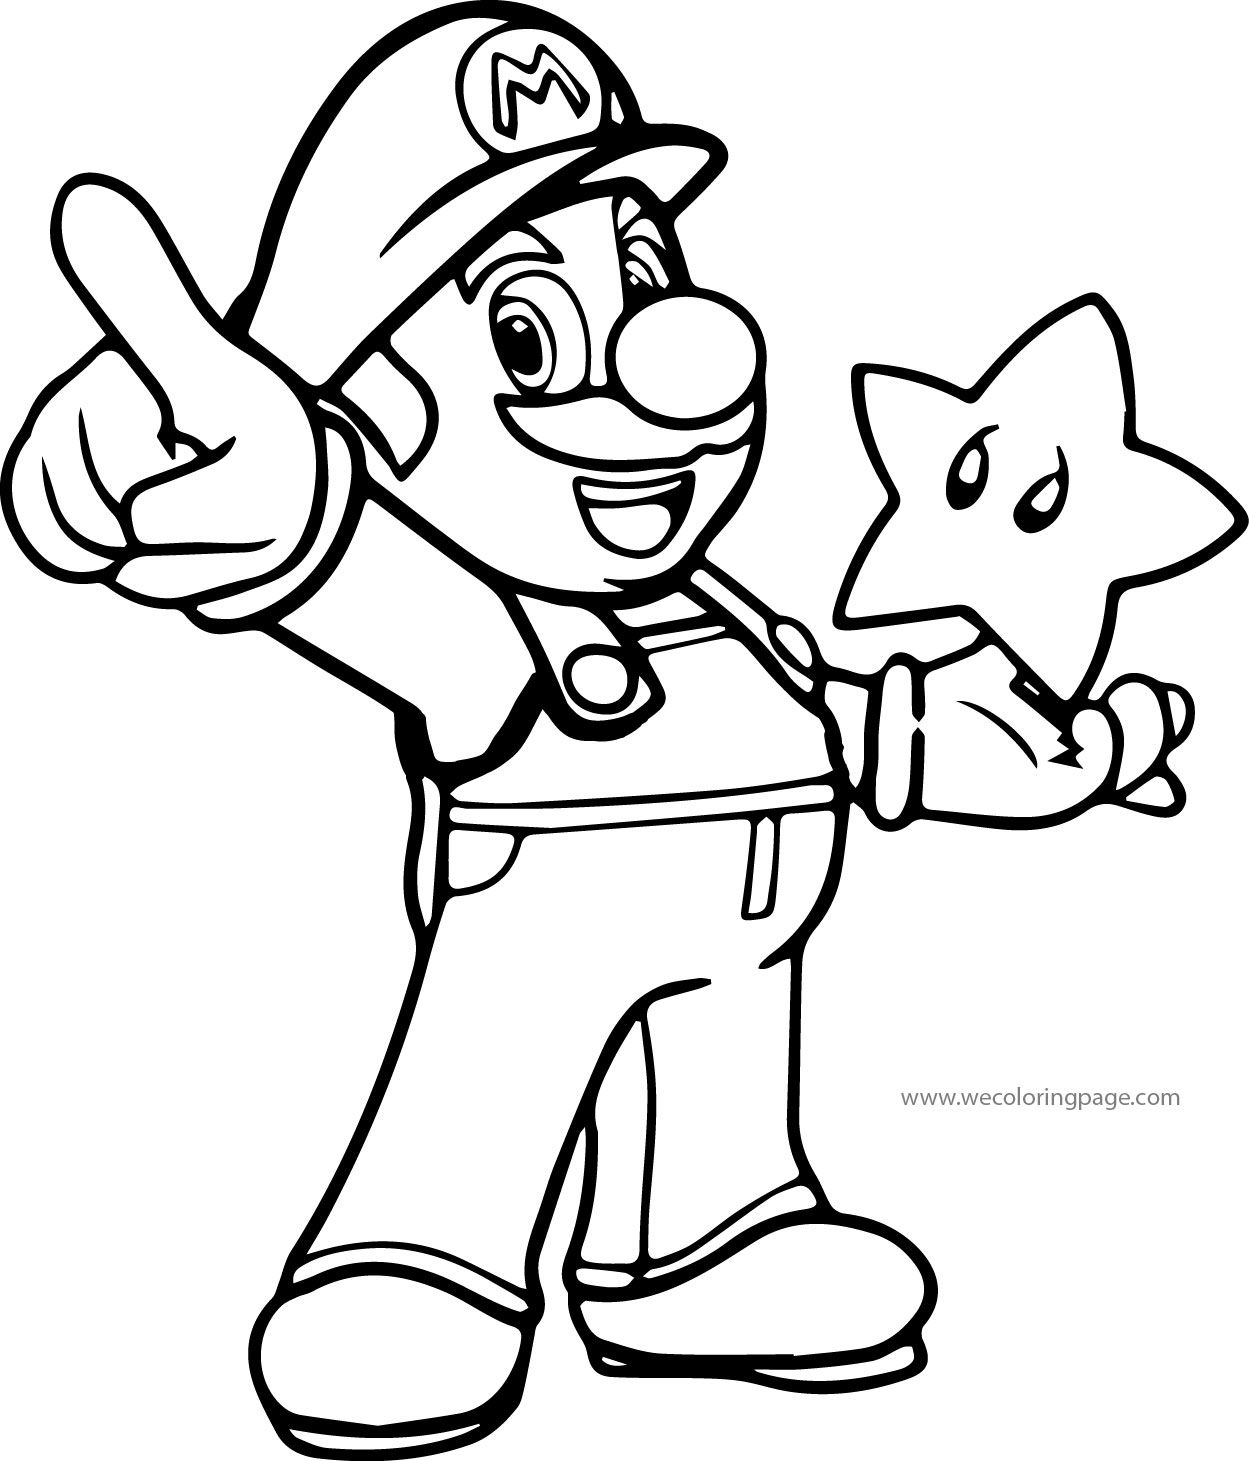 Pin By Wecoloringpage Coloring Pages On My Saves Super Mario Coloring Pages Super Coloring Pages Mario Coloring Pages